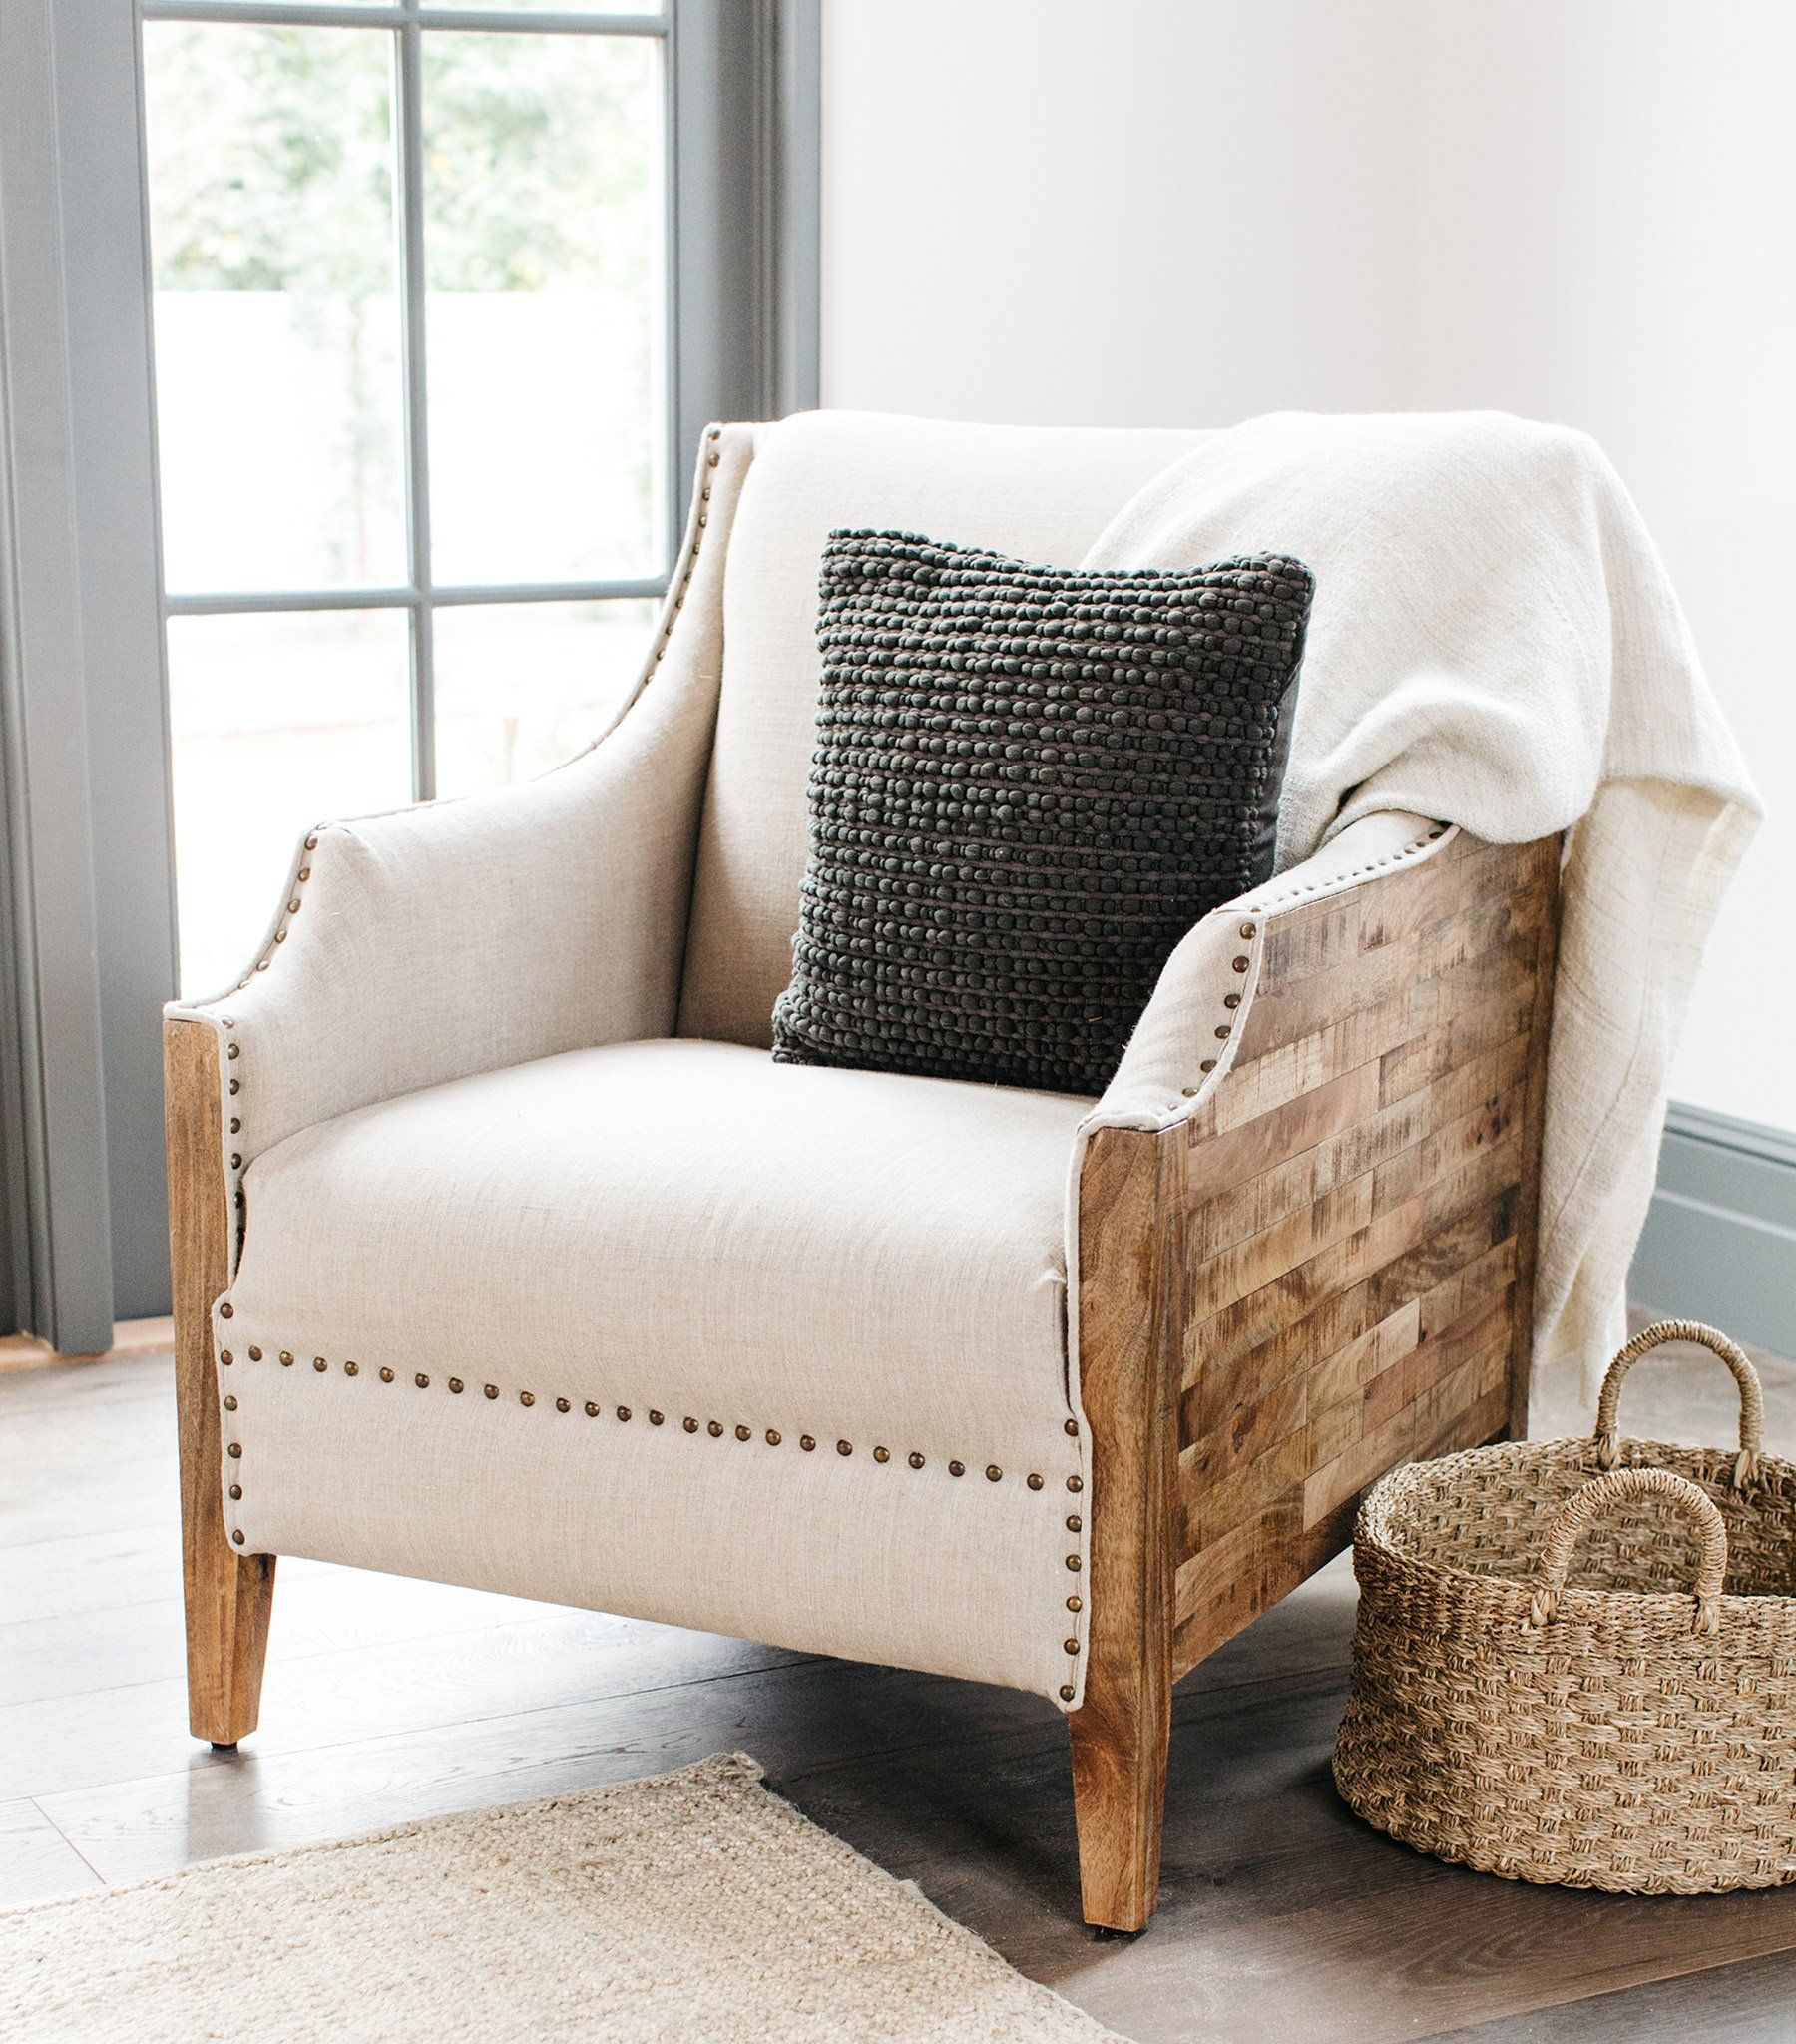 Accent Chair Next To A Full Size Bed: Chair, Living Room Chairs, Home